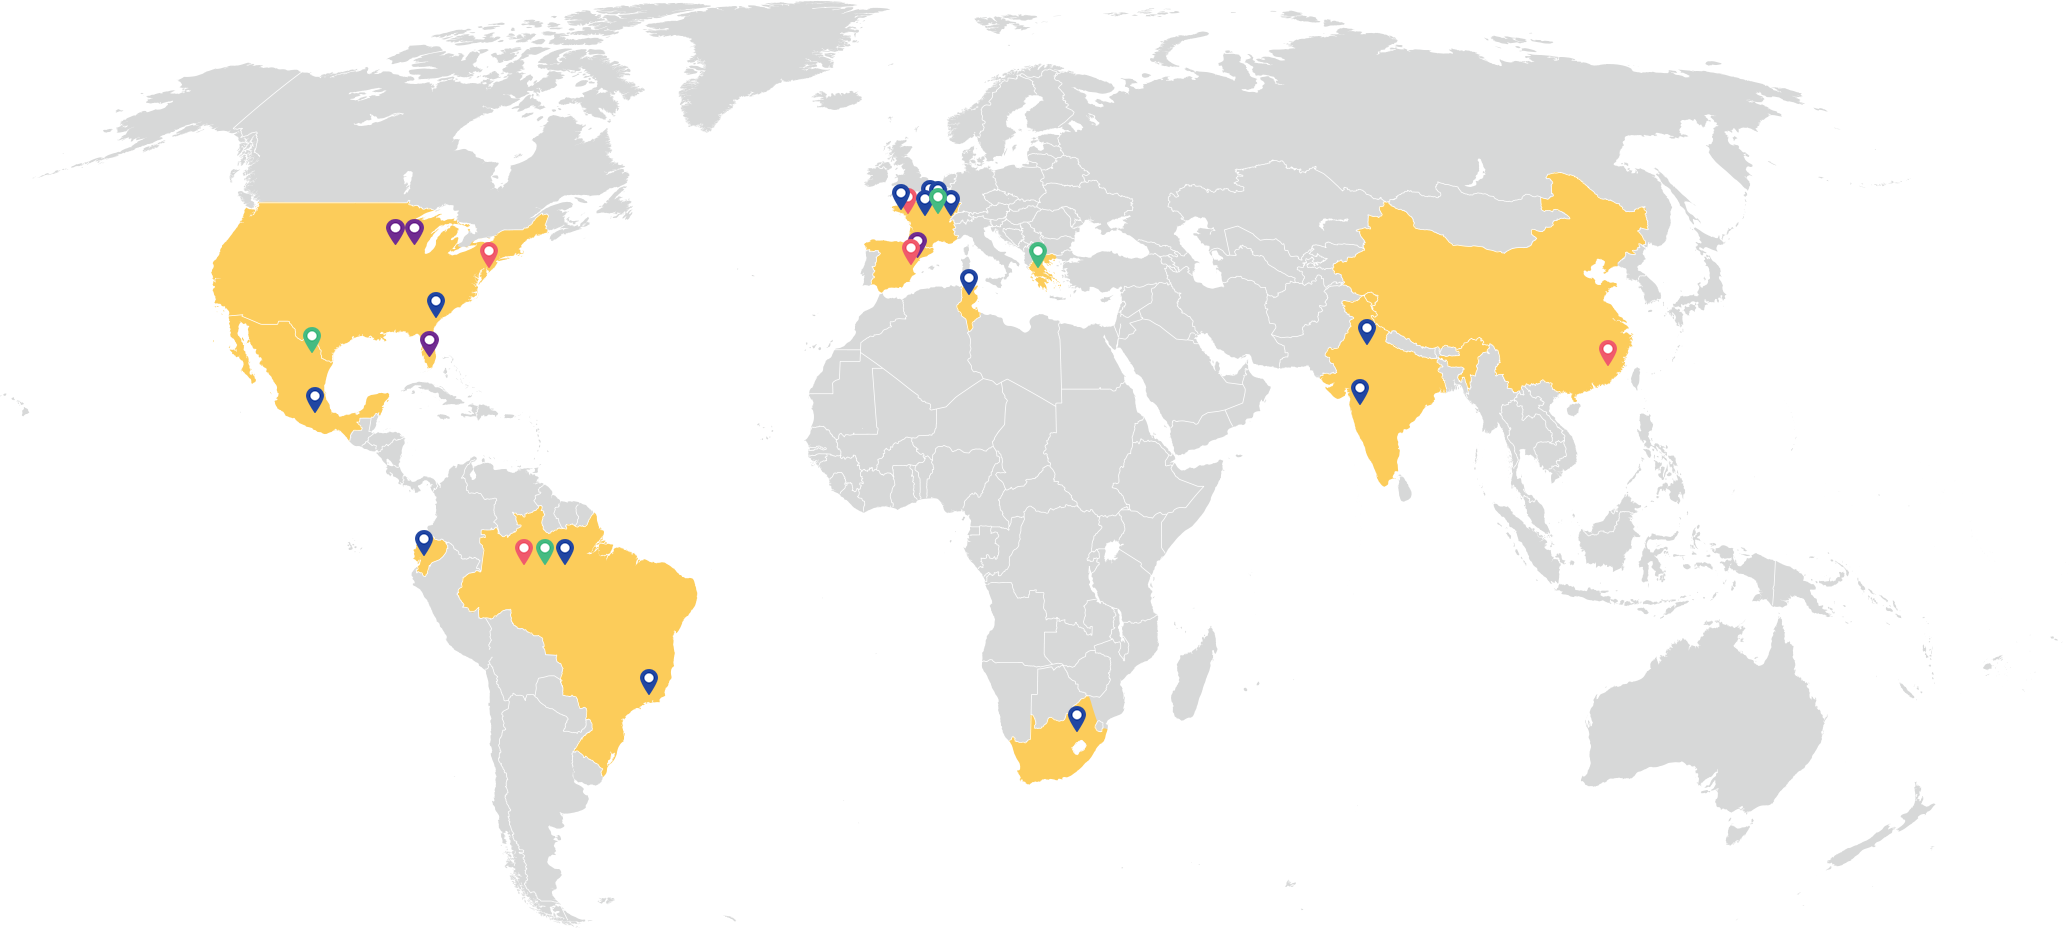 Global map of BIC's worldwide factories